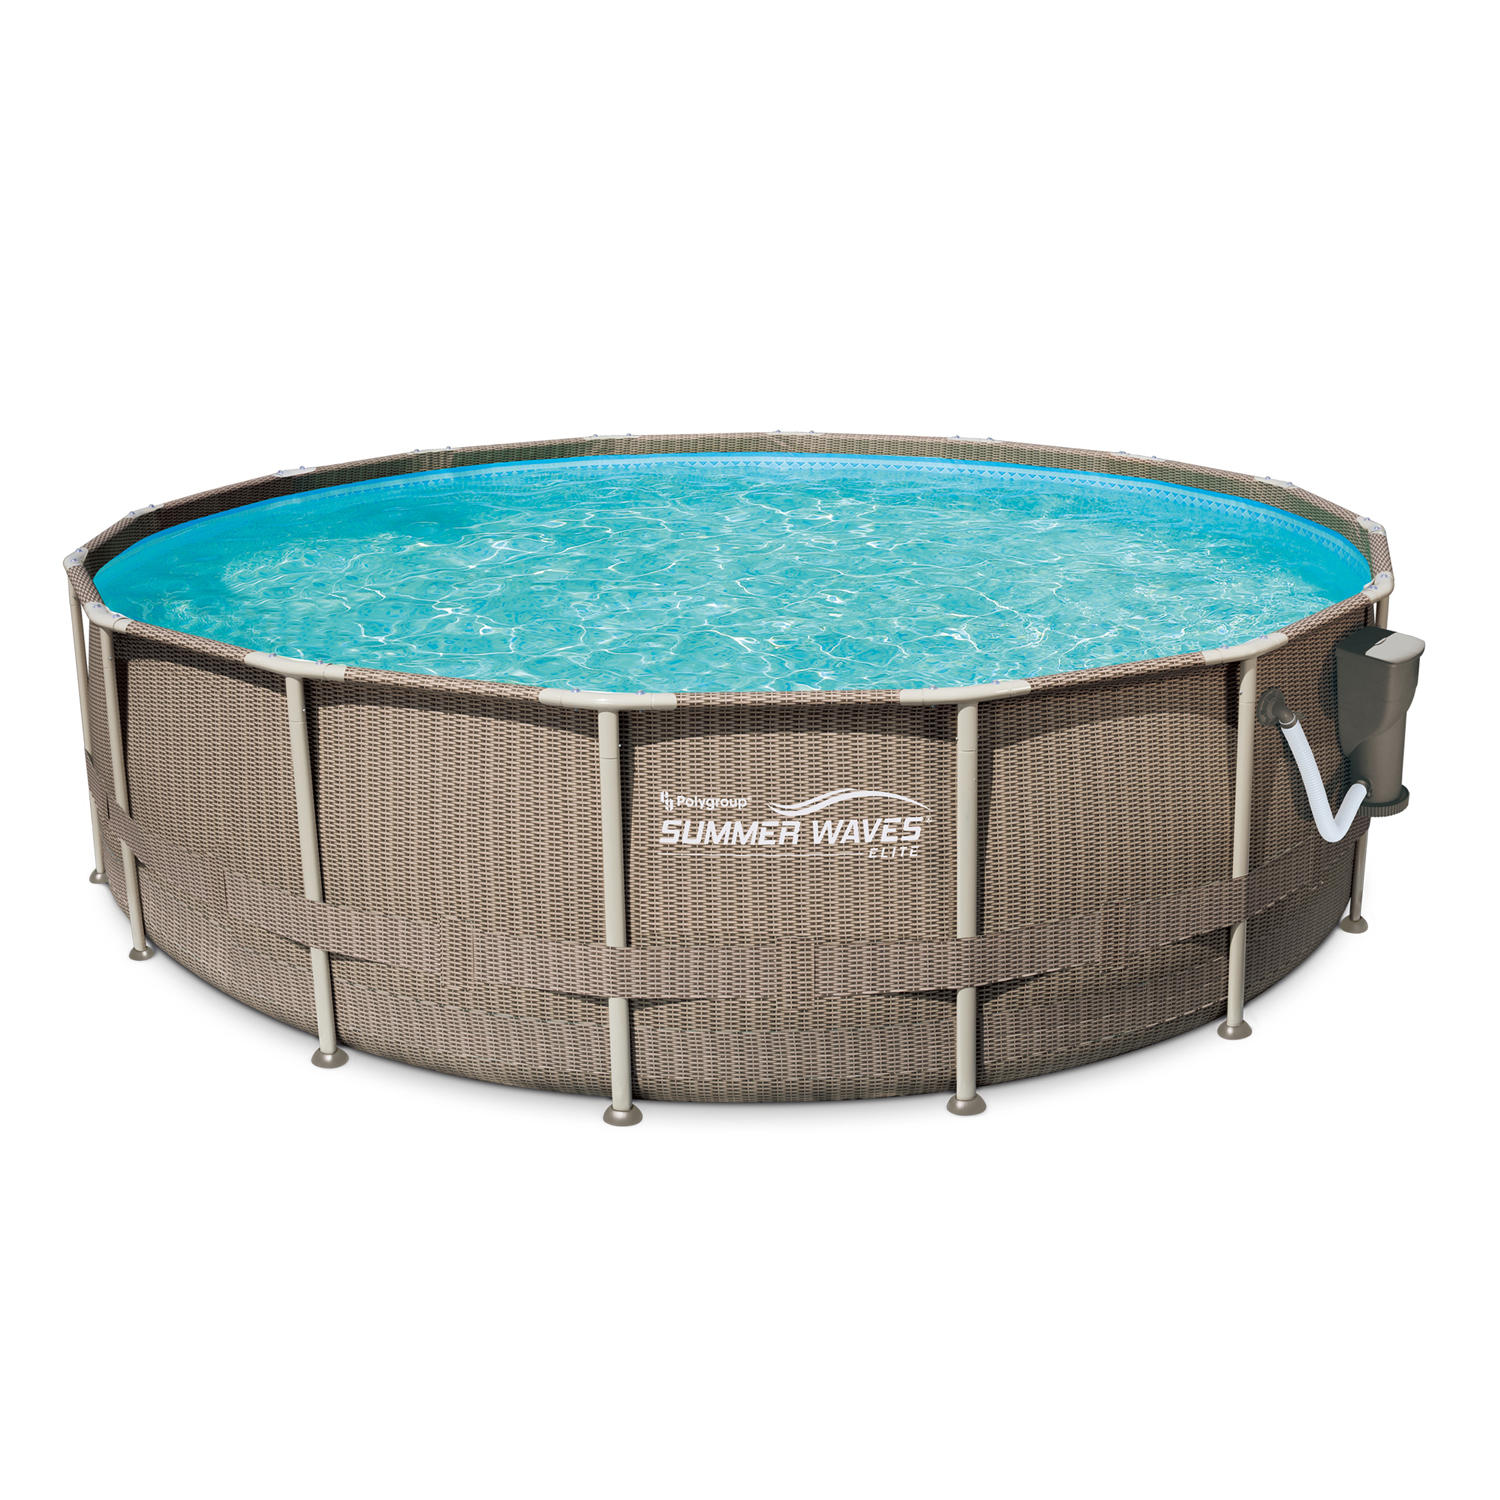 38a7dbe6f02 Hard Sided Swimming Pools - Walmart.com - Walmart.com